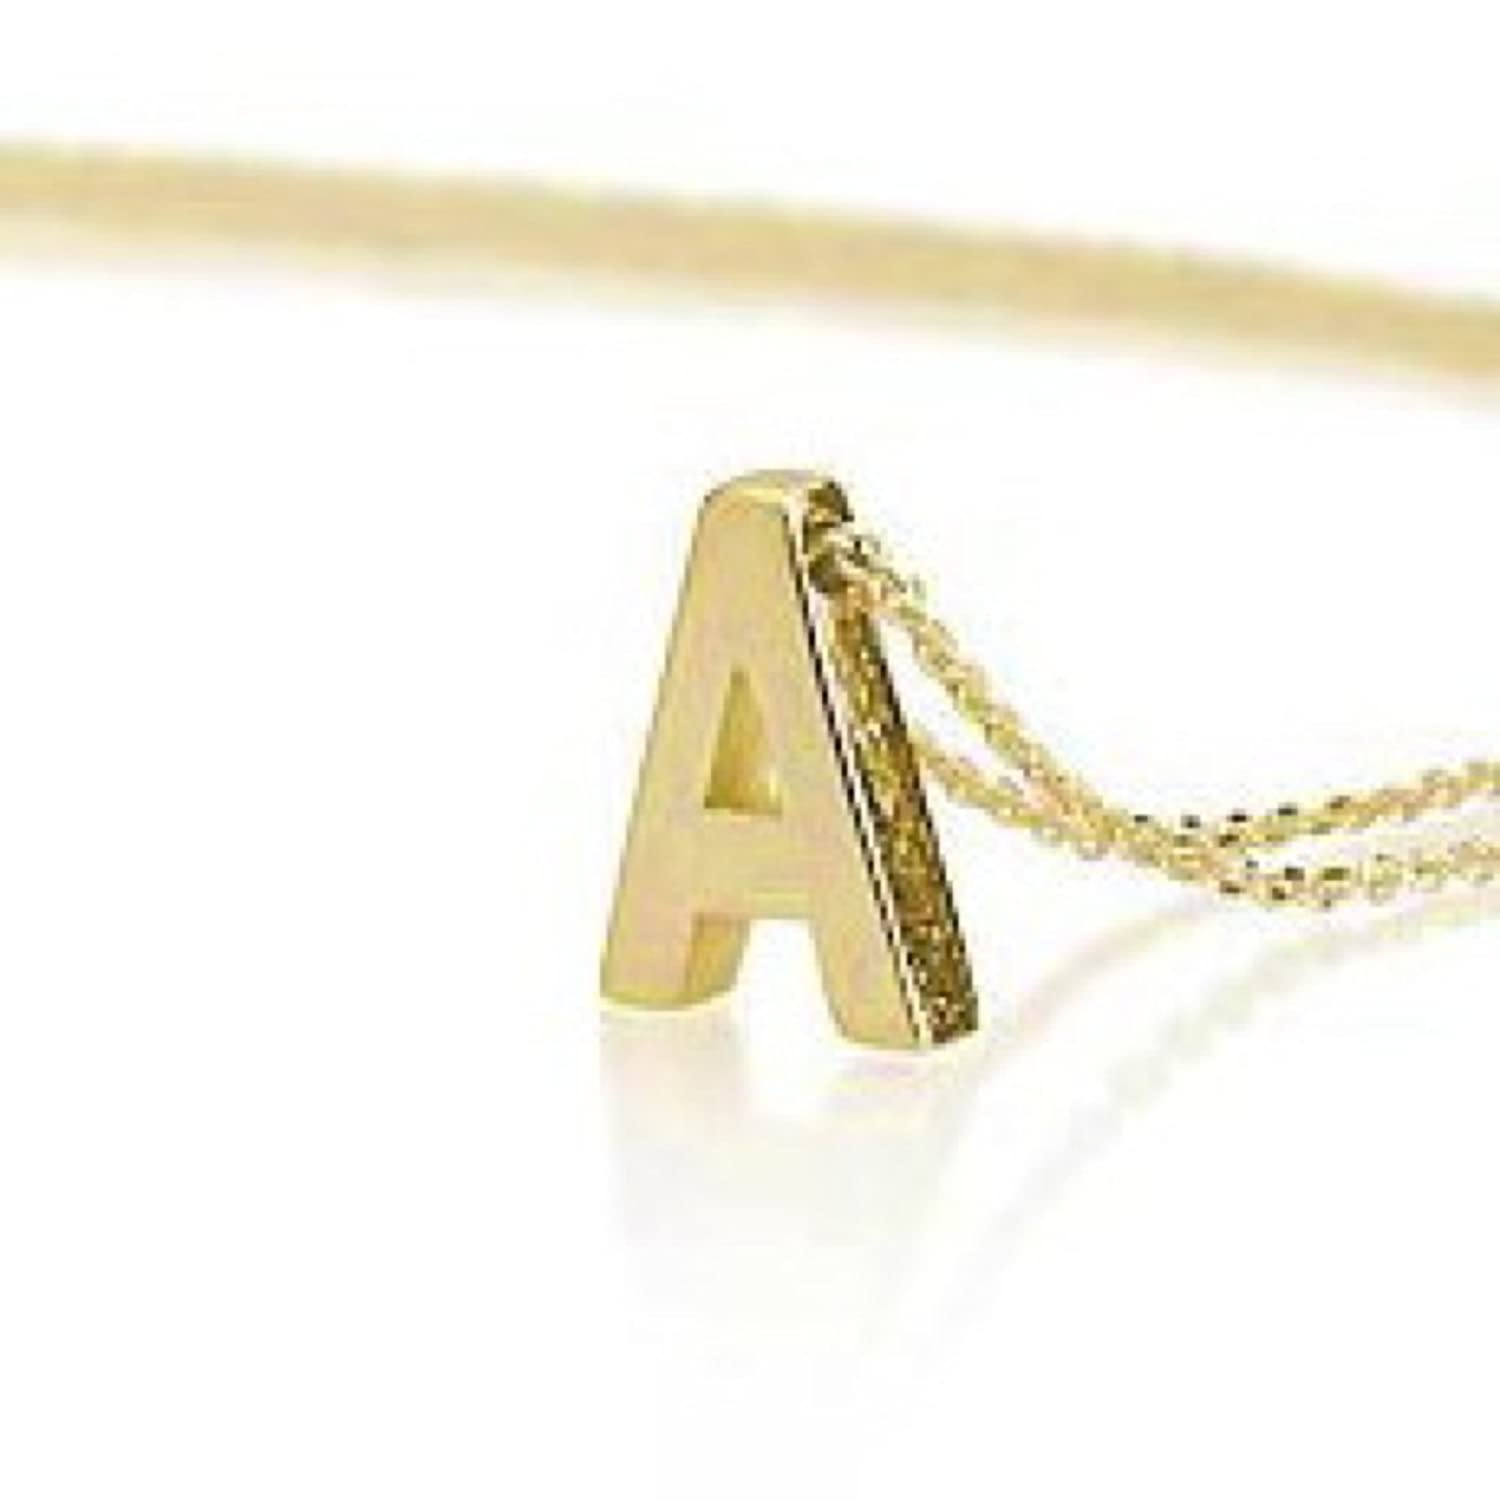 Amazon initial necklace 18k gold plated personalized initial amazon initial necklace 18k gold plated personalized initial necklace letter necklace choose any initial 14 inches pendant necklaces jewelry mozeypictures